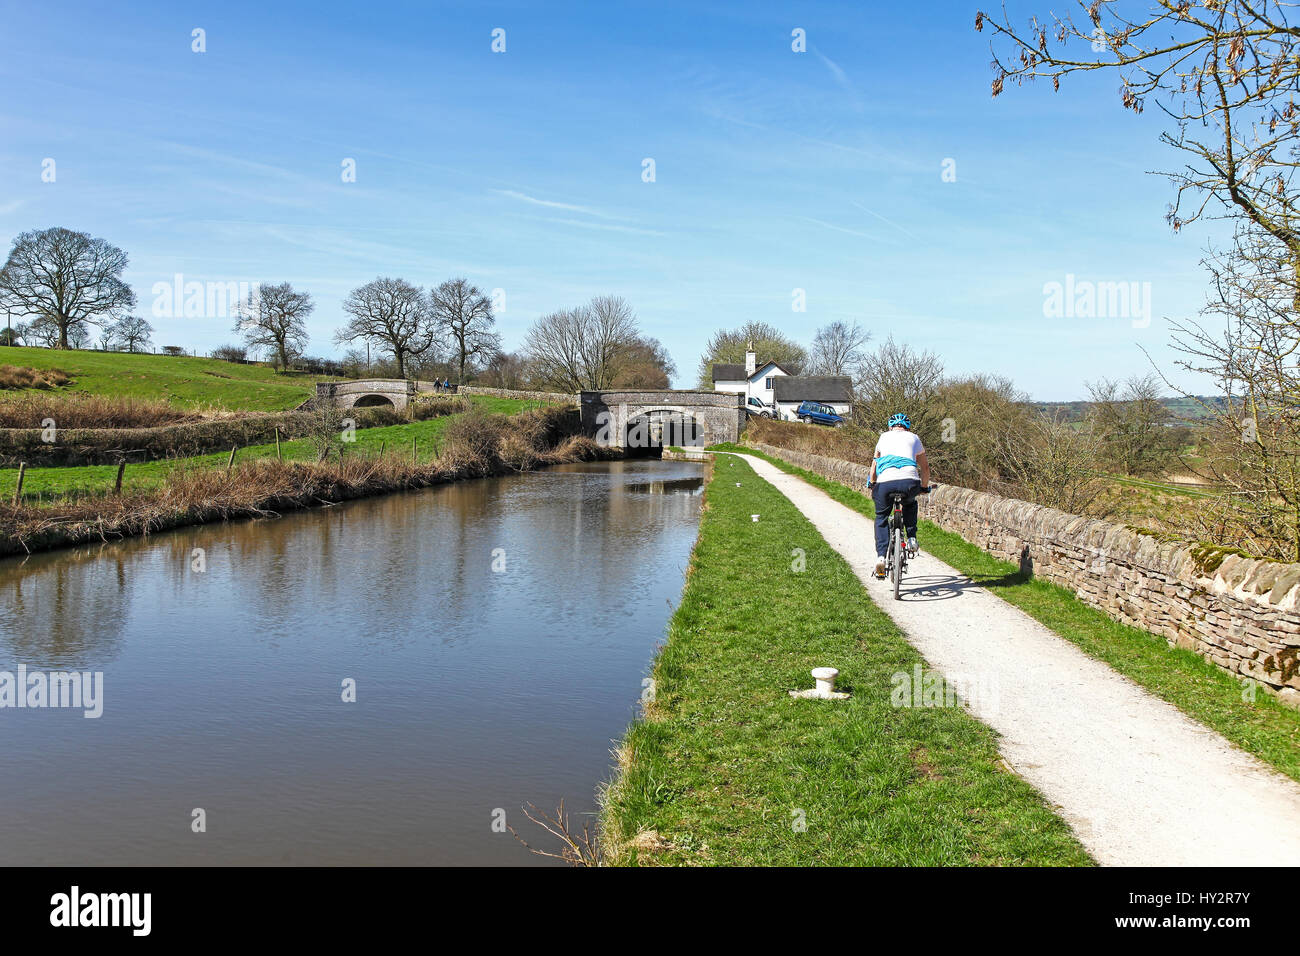 A male cyclist on the towpath of the Caldon branch of the Trent and Mersey canal at Hazelhurst locks Denford Staffordshire - Stock Image